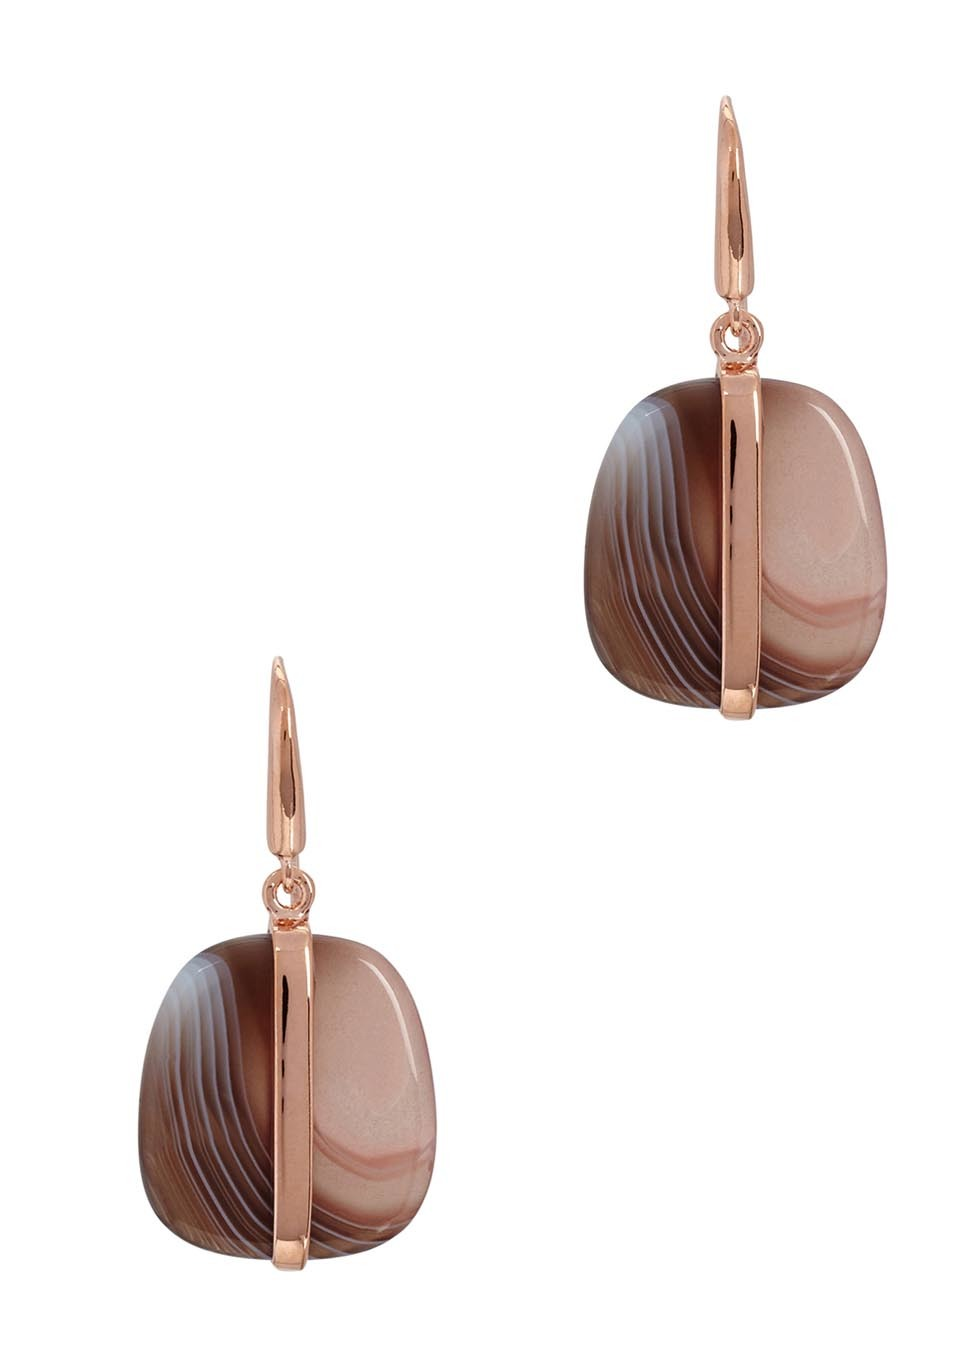 Bassa Botswana Agate Earrings - predominant colour: chocolate brown; secondary colour: gold; occasions: evening; style: drop; length: short; size: standard; material: chain/metal; fastening: pierced; finish: metallic; embellishment: jewels/stone; season: a/w 2016; wardrobe: event